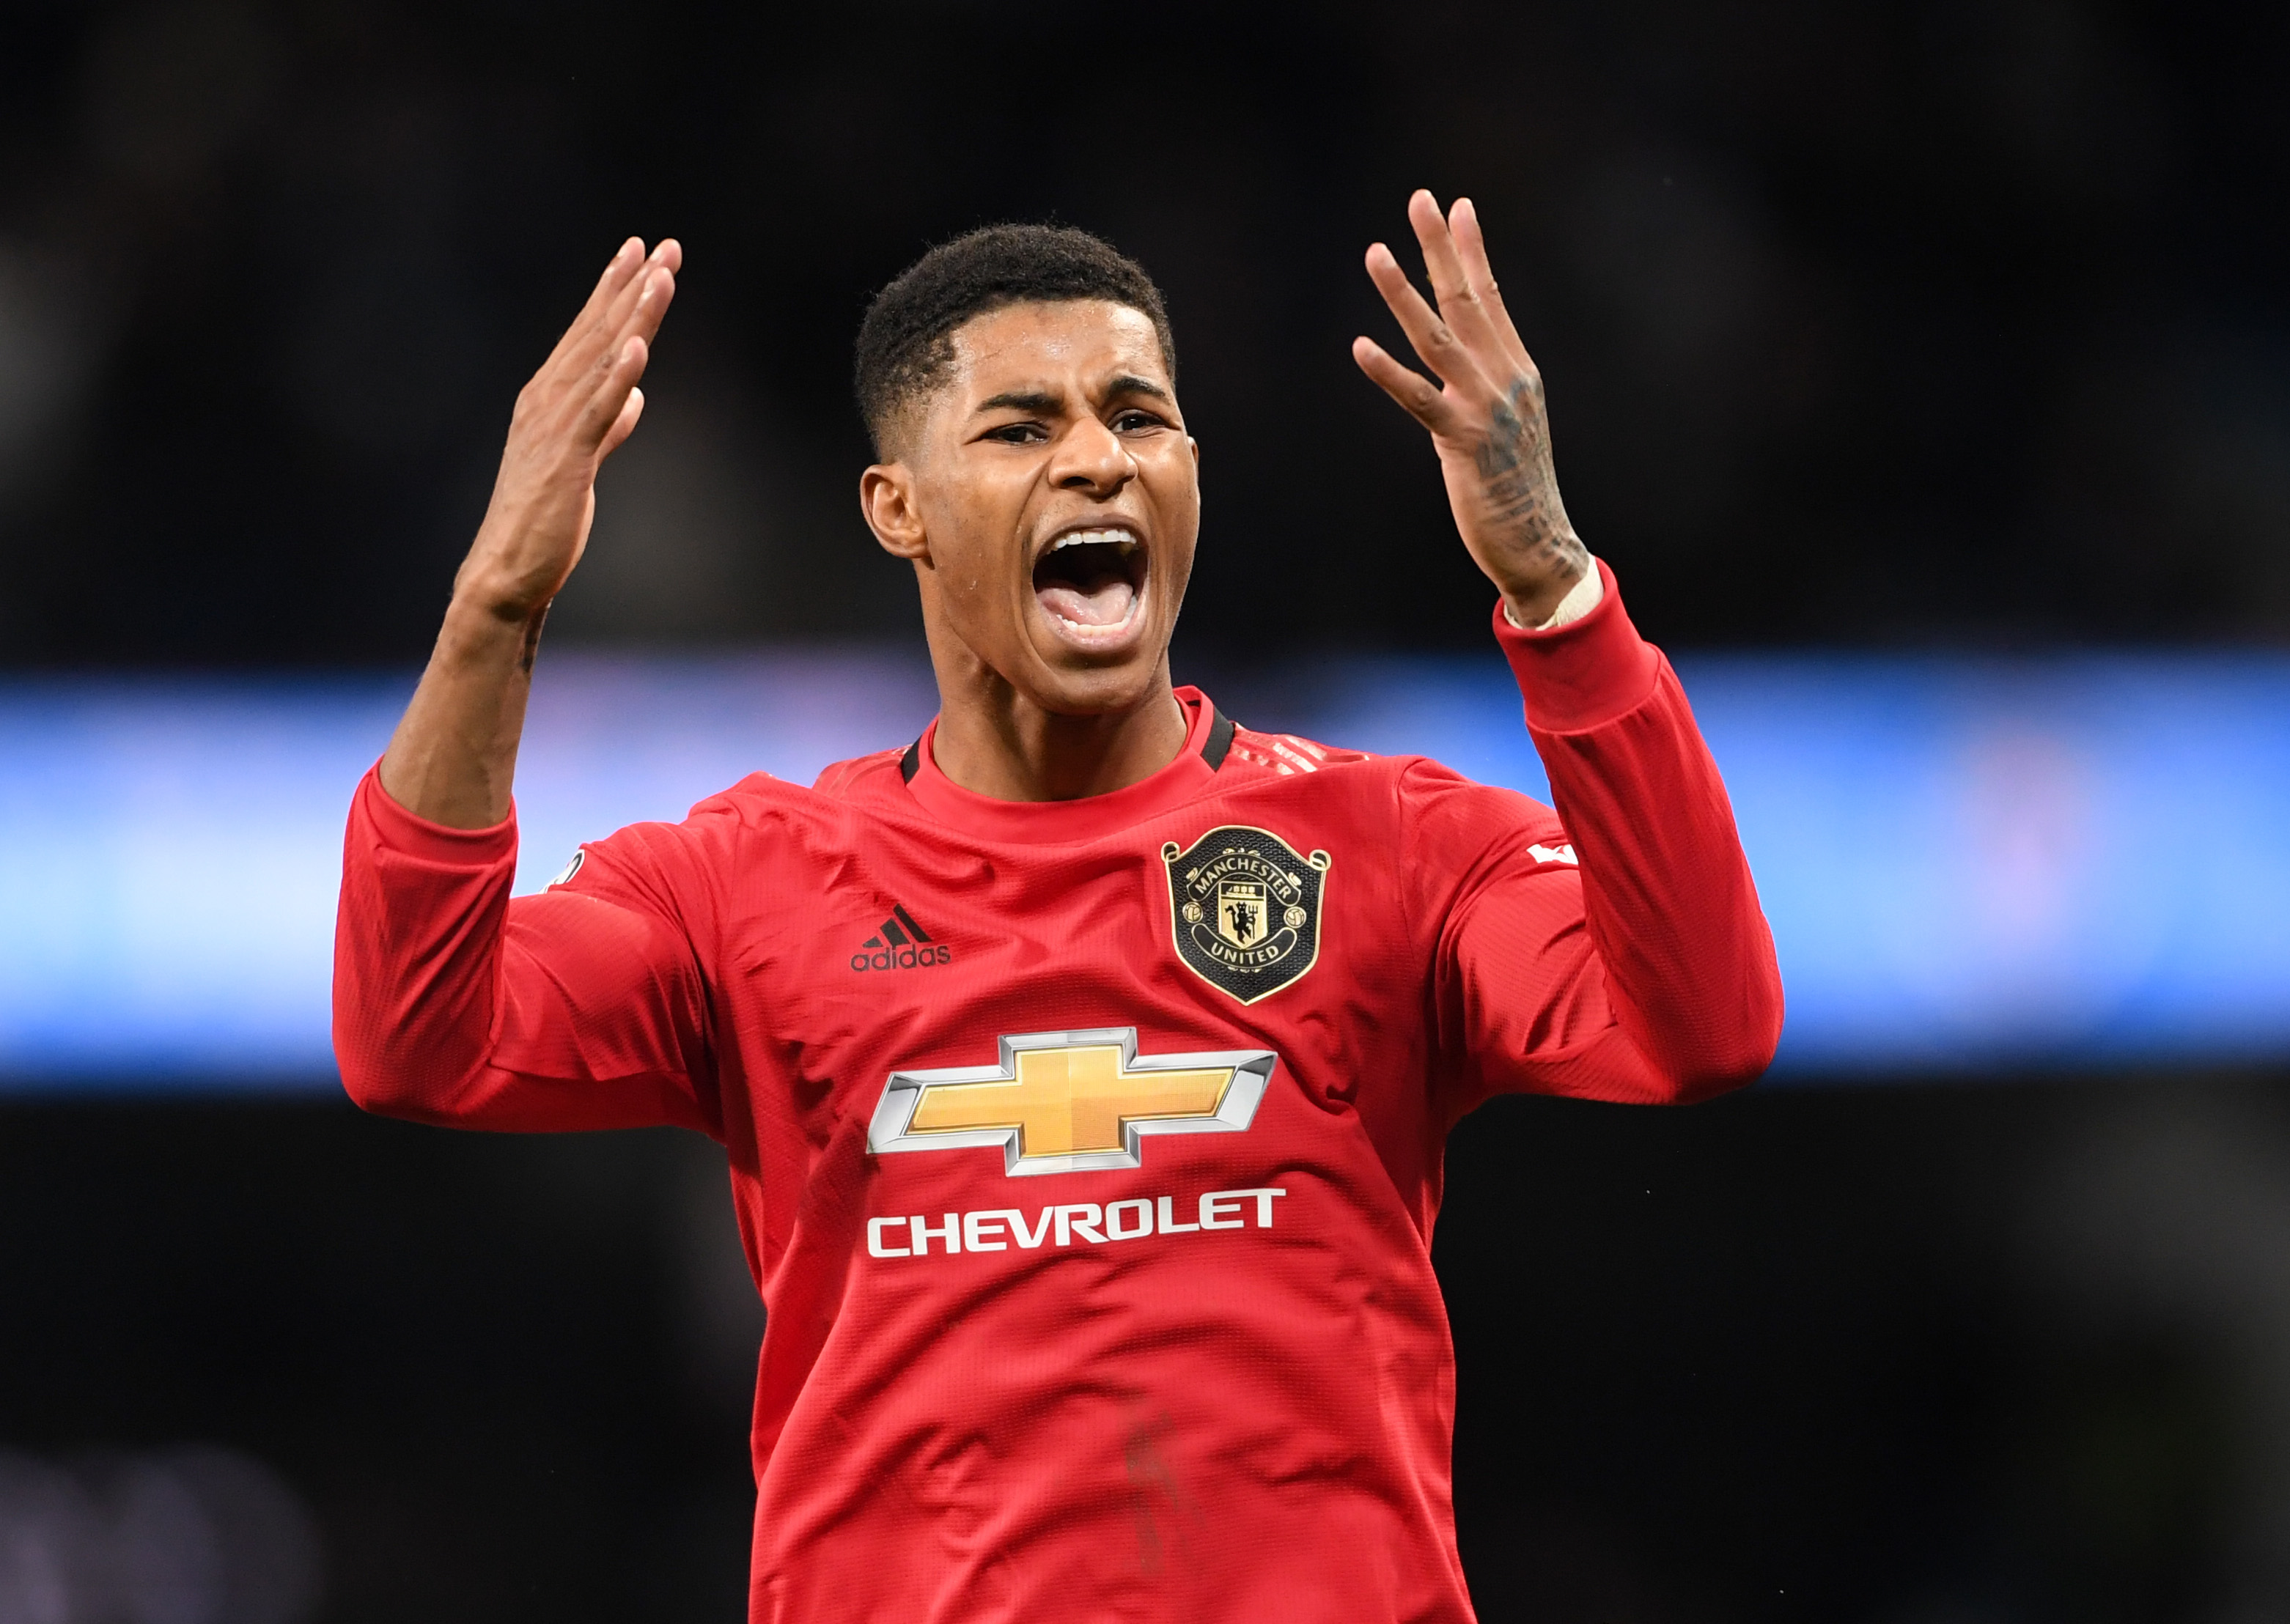 Drawing comparisons with Cristiano Ronaldo, but will Rashford be the one to replace Messi at Barcelona? (Photo by Laurence Griffiths/Getty Images)